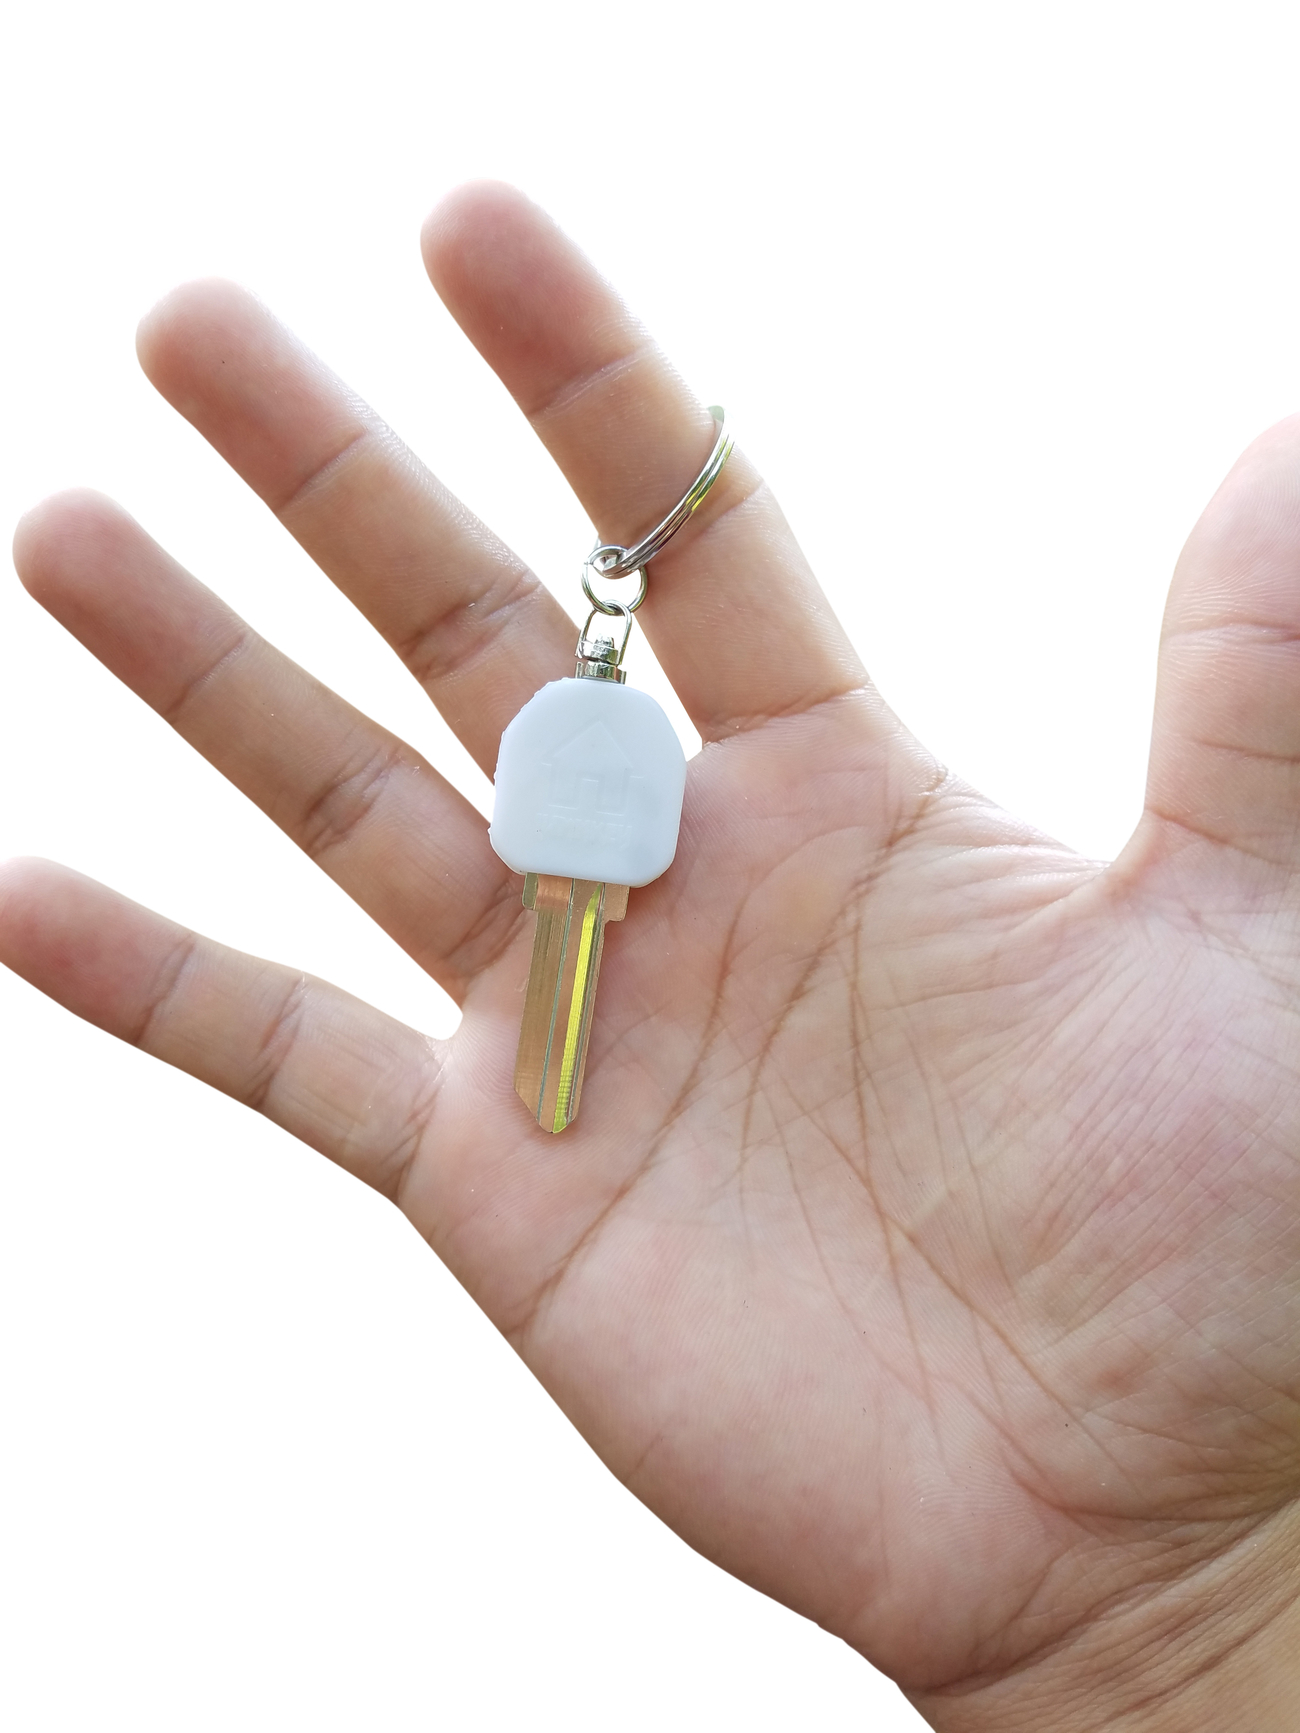 LumNkey LED Smart Key